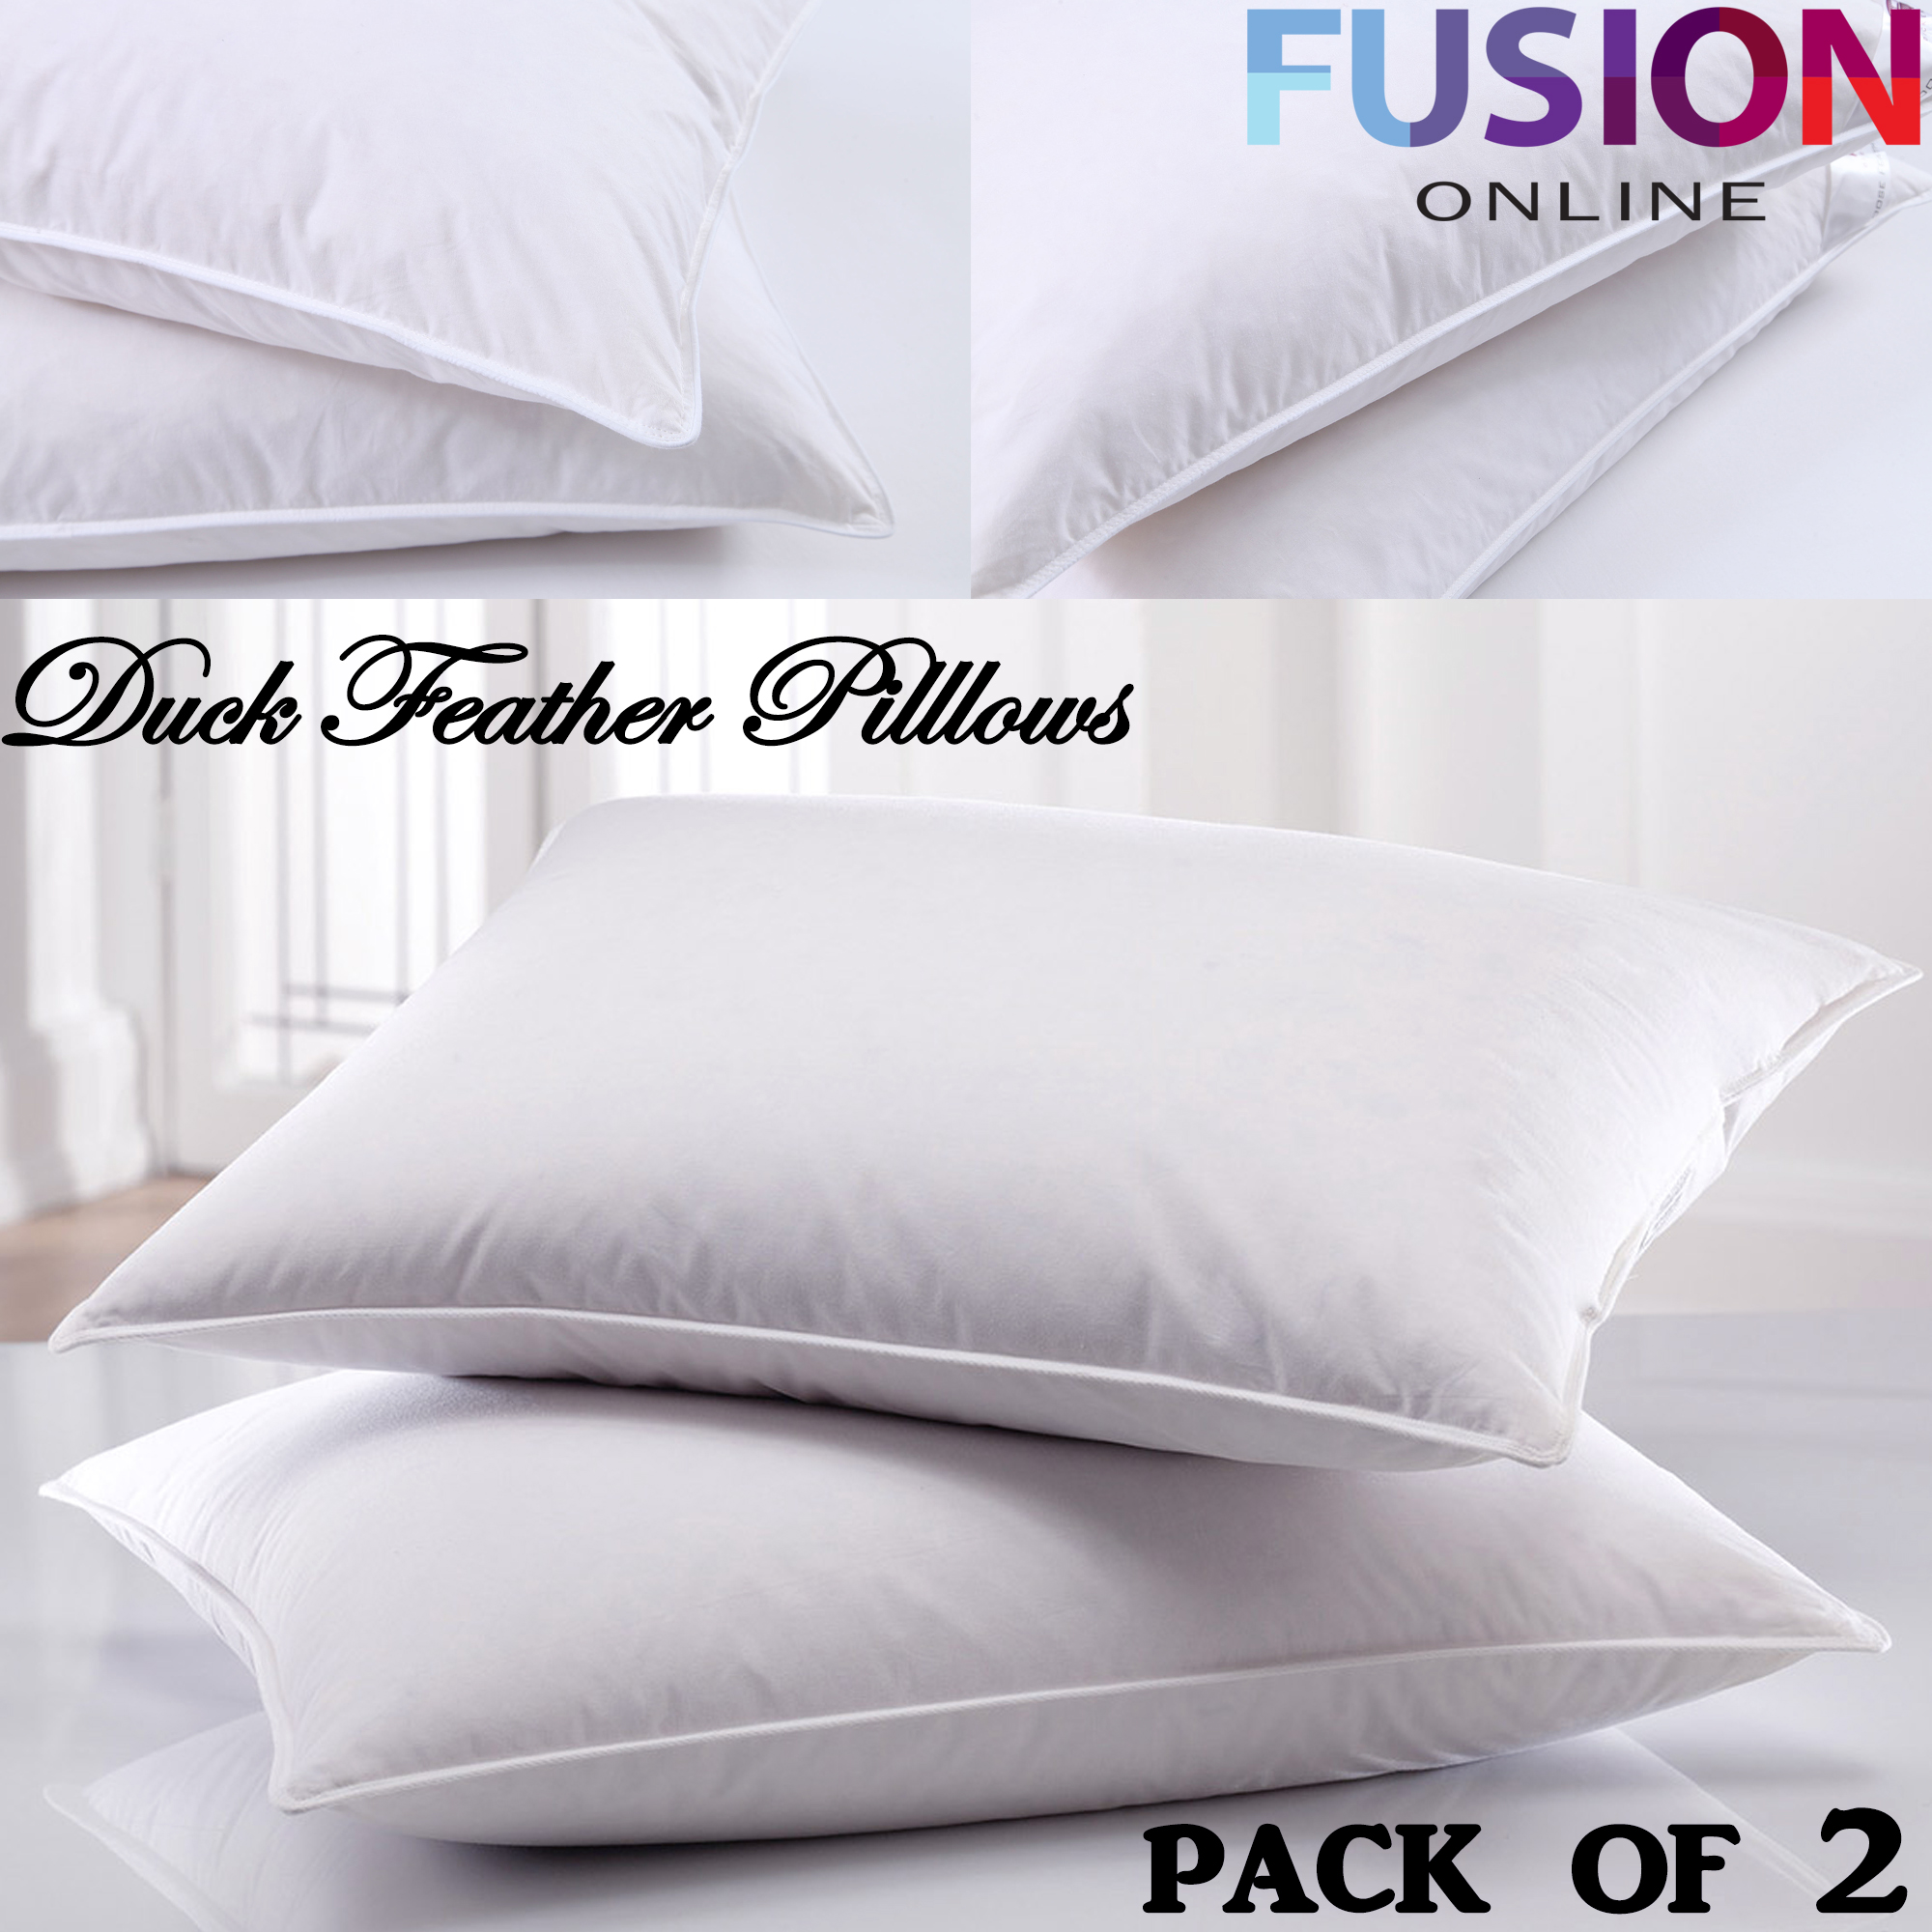 knocked filling up scatter few cushion a we pillow cushions pads for inner pictures and pillows feather bolsters tx just our